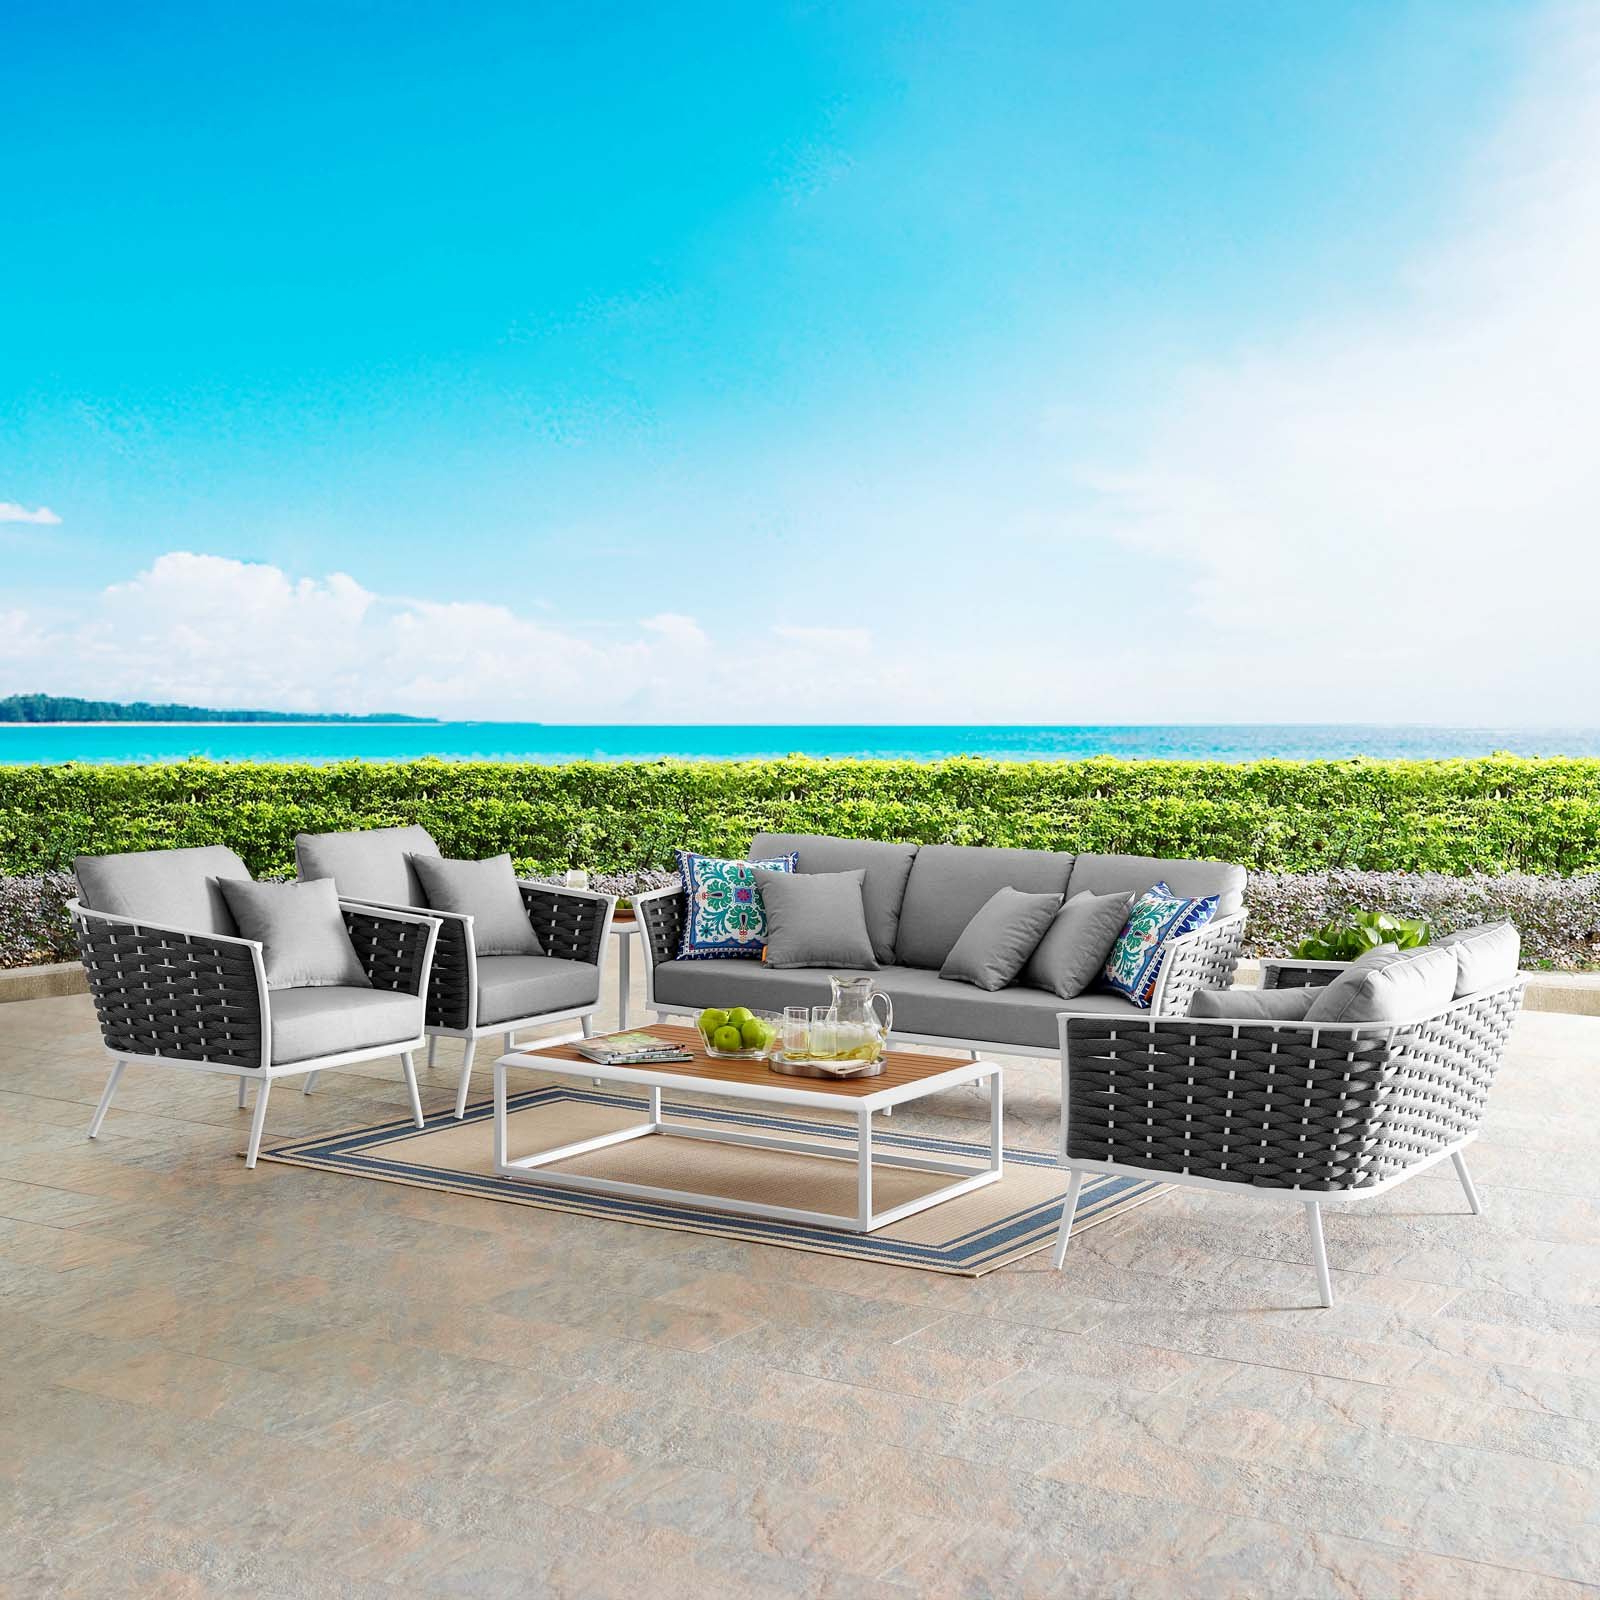 Most Current Rossville Outdoor Patio Sofas With Cushions Pertaining To Marketonic 7 Piece Outdoor Patio Aluminum Sectional Sofa Set (View 15 of 25)